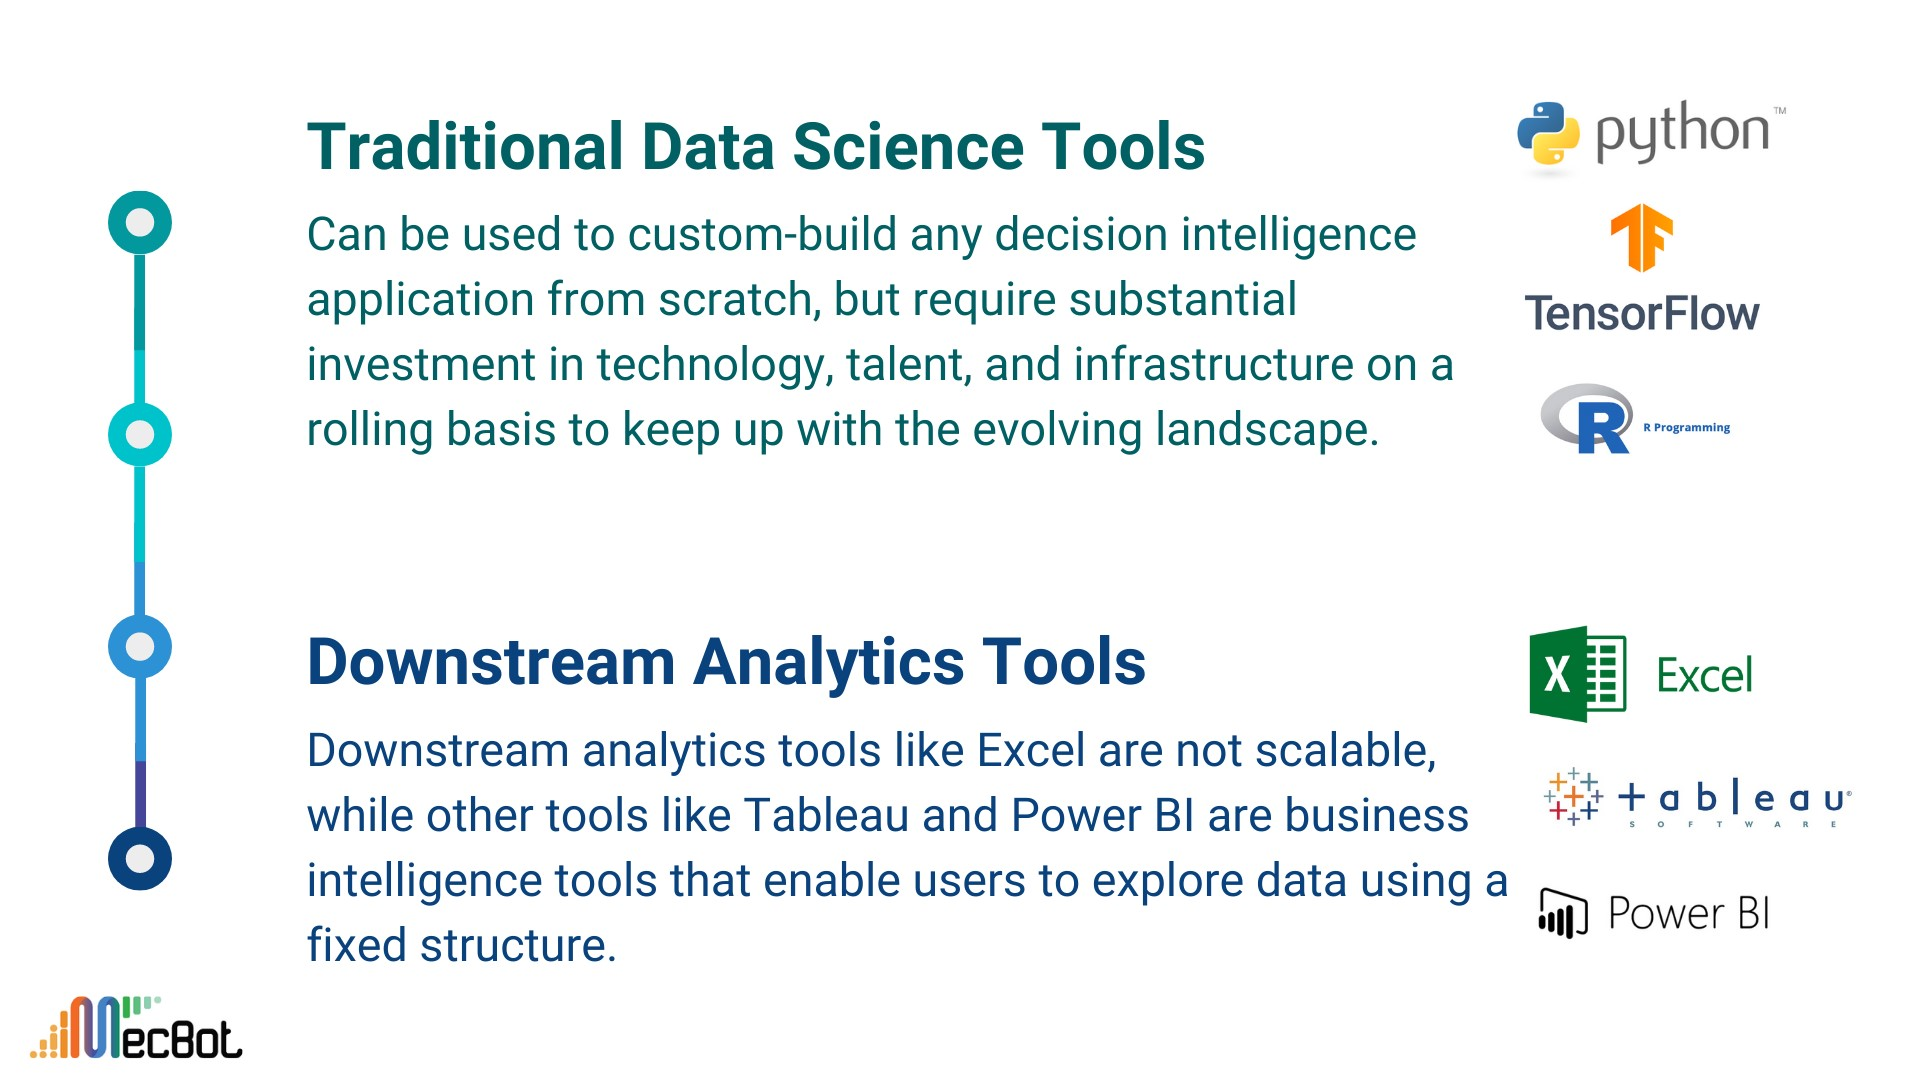 Traditional Data Science Tools